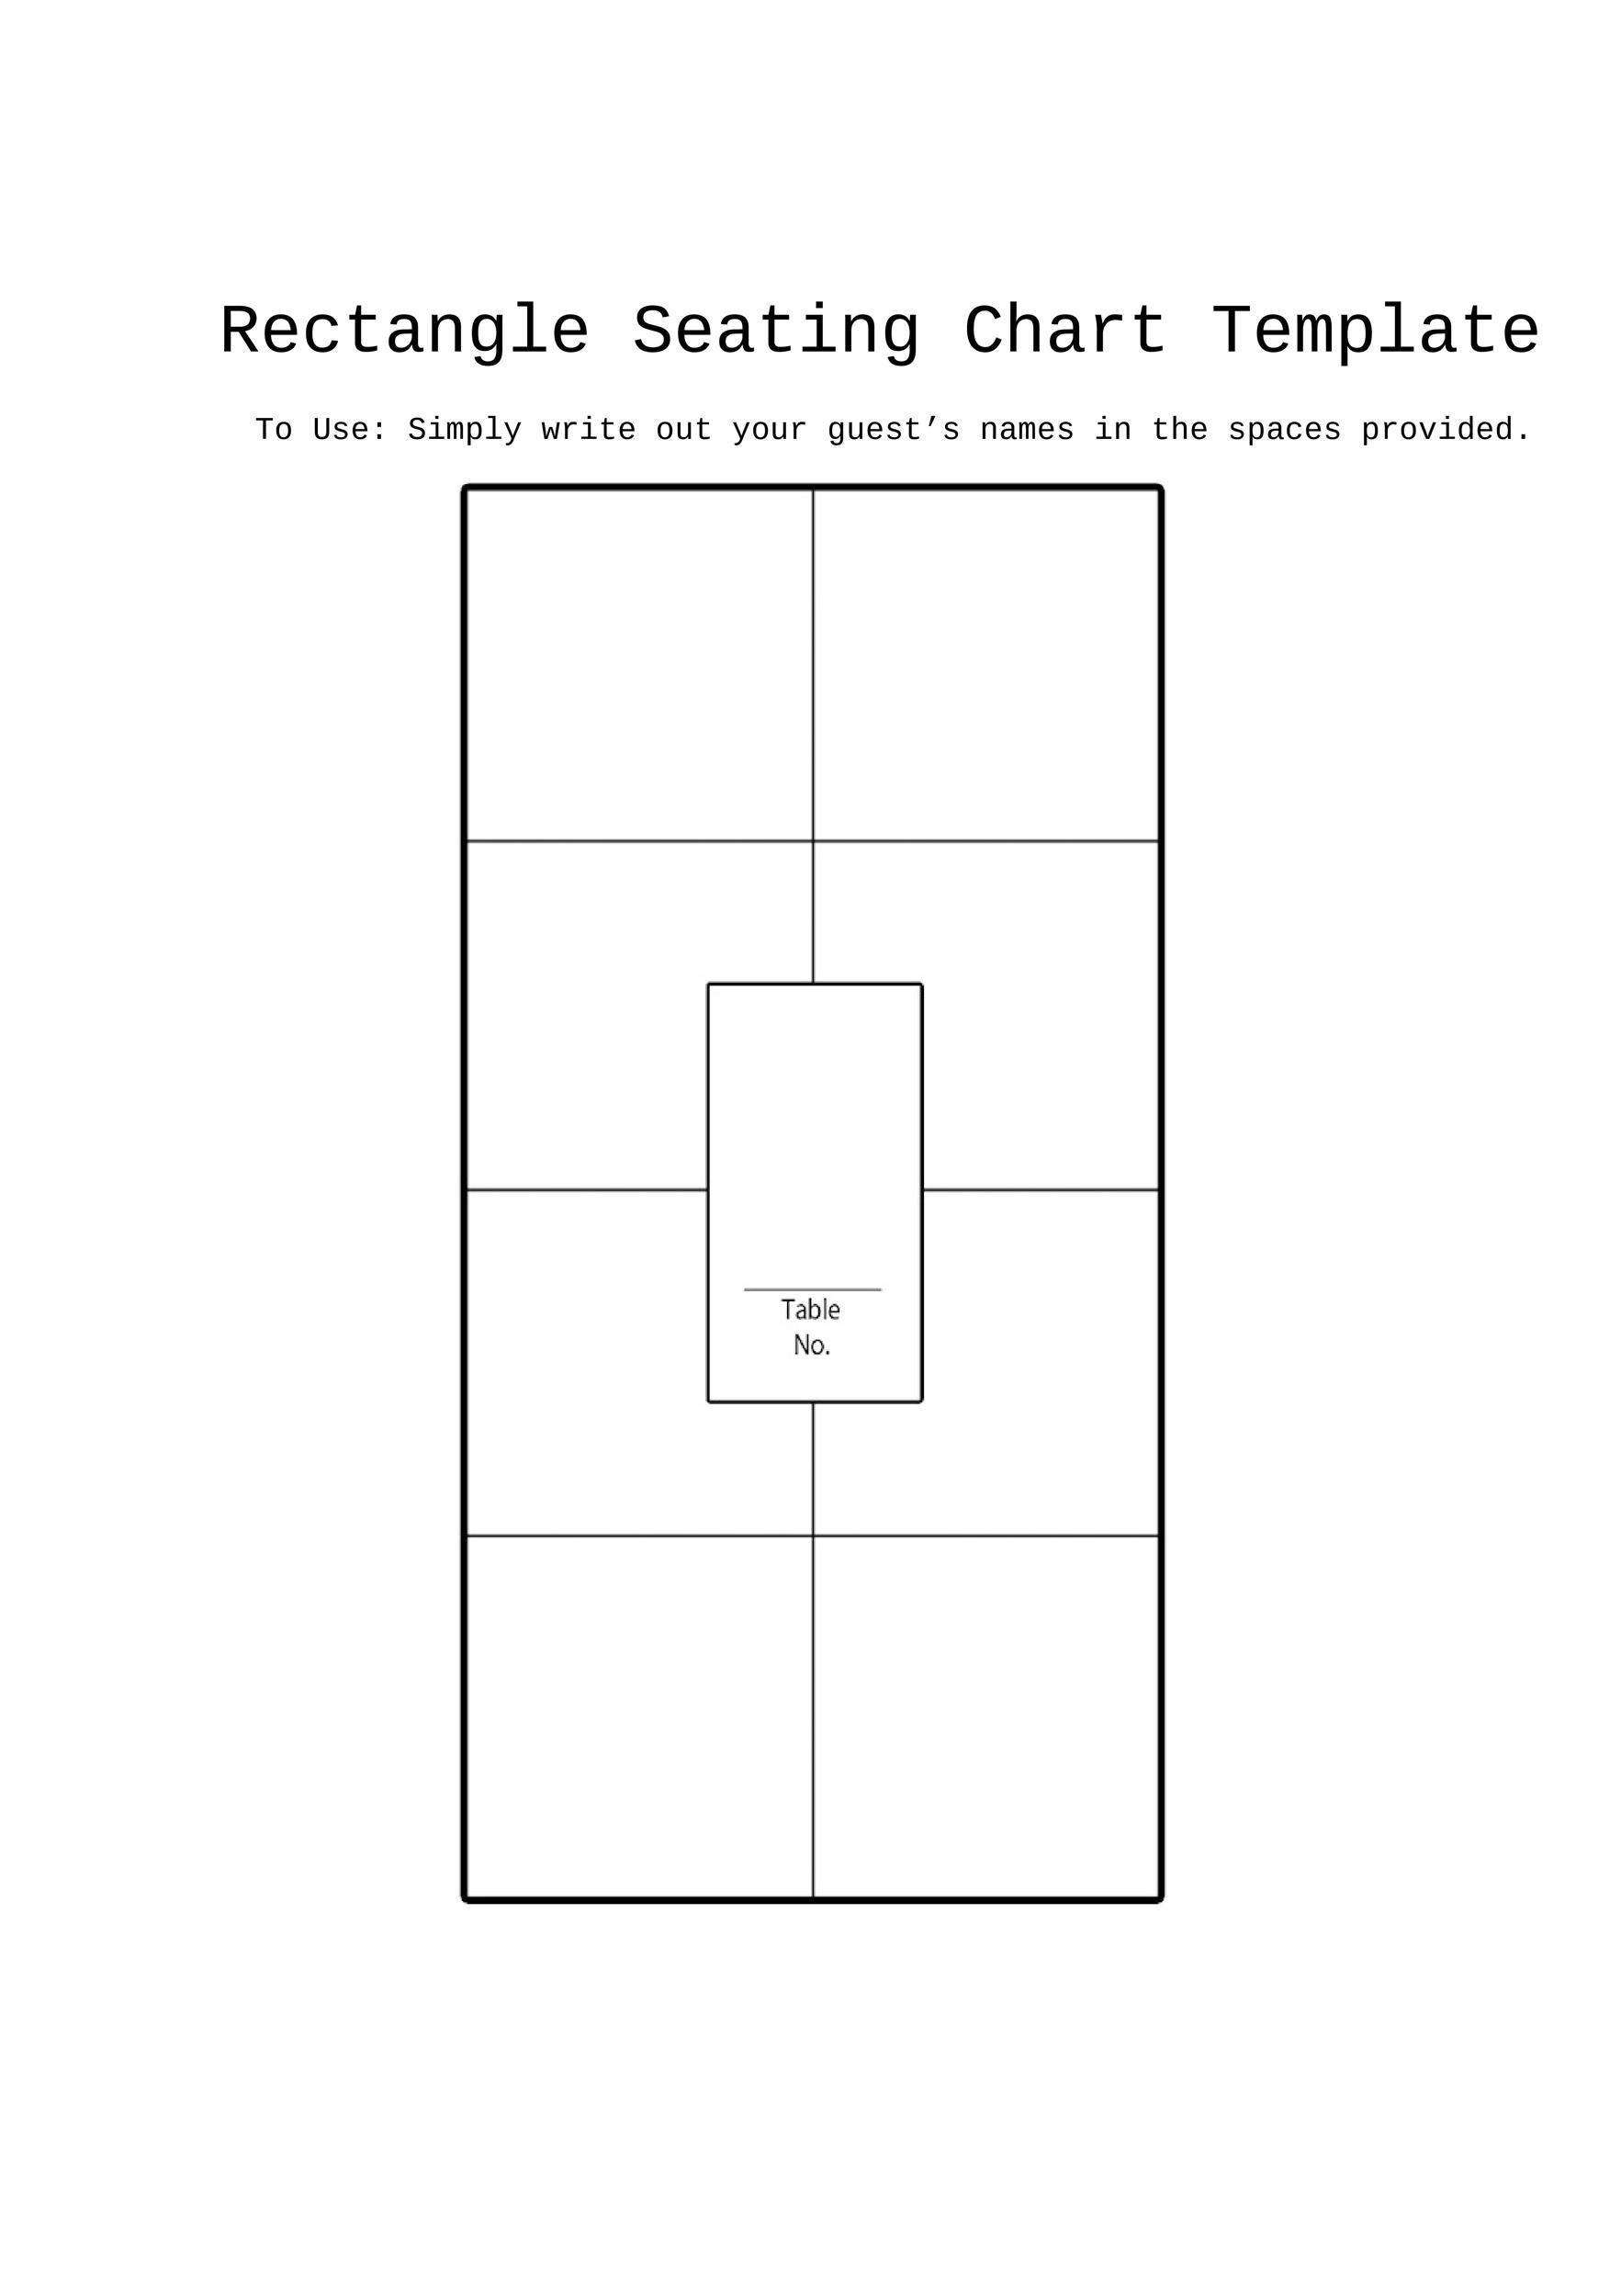 free seating chart template 07 printable - Free Printable Wedding Seating Chart Template